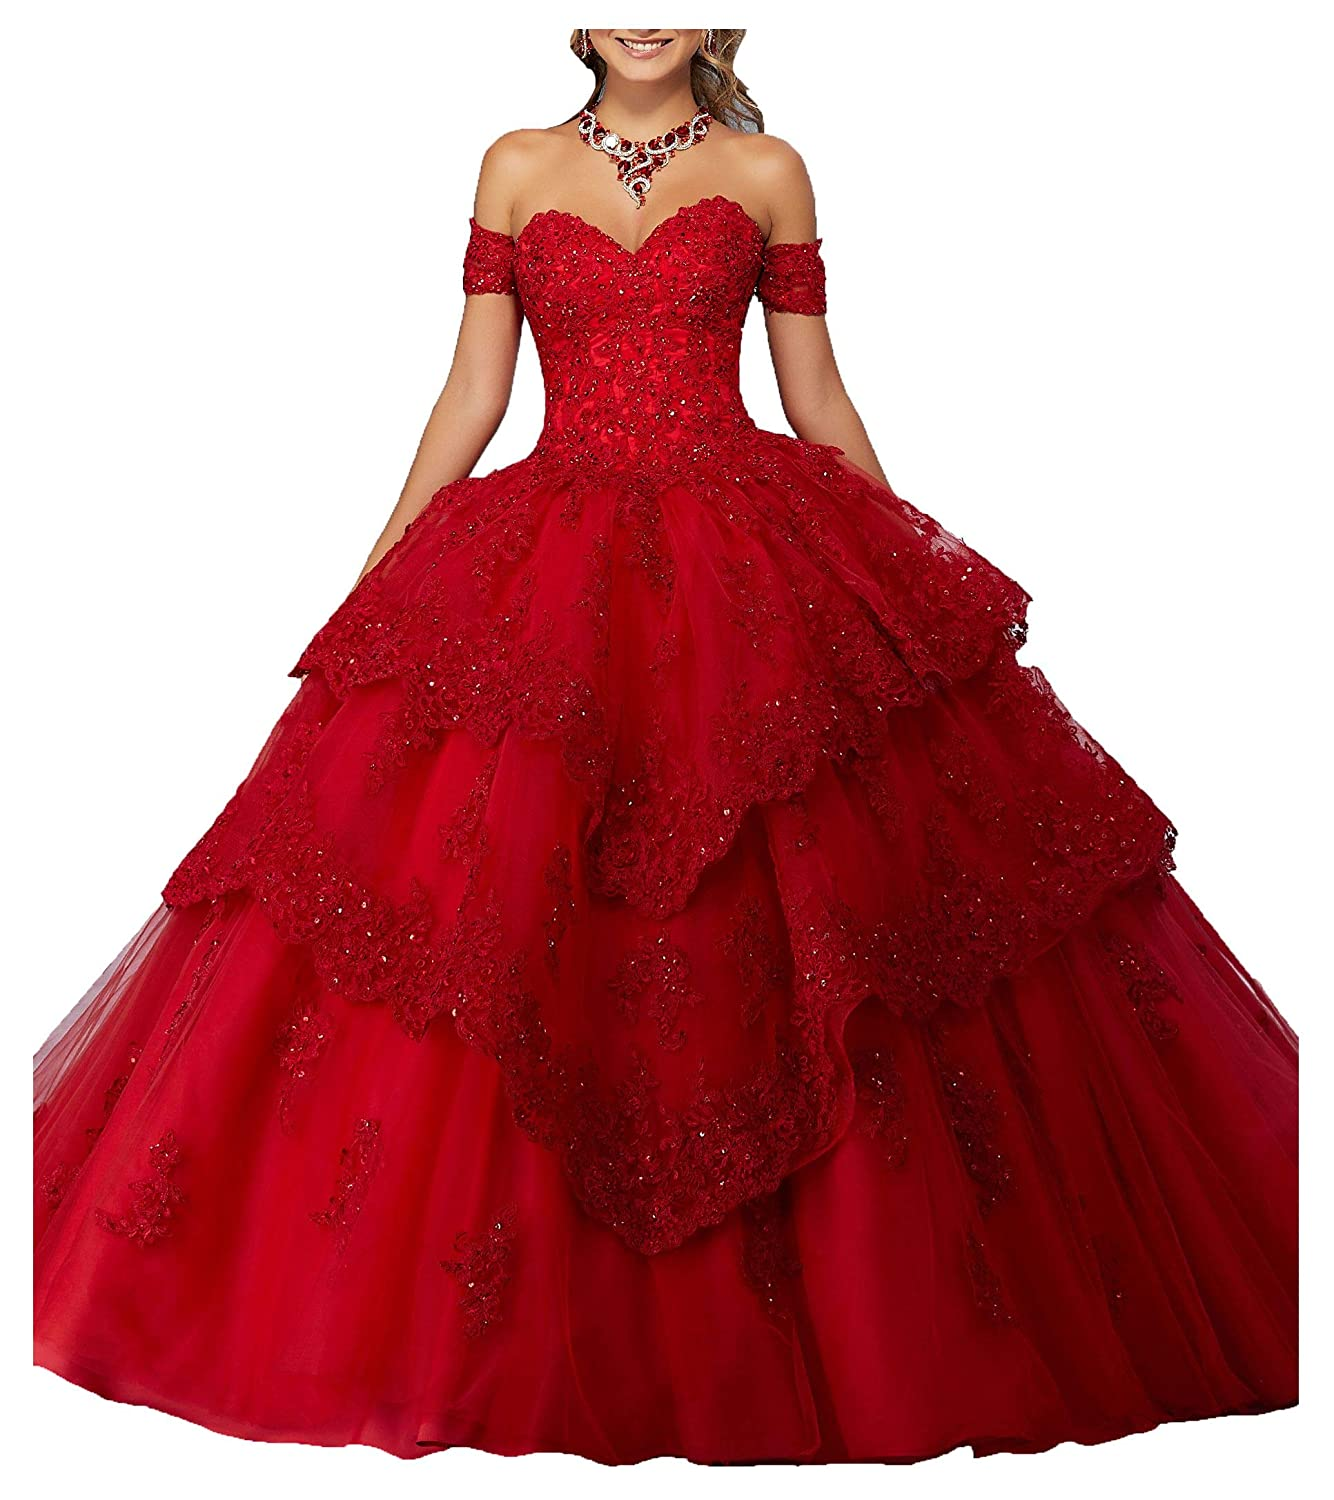 Red B MFandy New Sweetheart Girls 16 Quinceanera Dress Appliques Beaded Ball Gowns